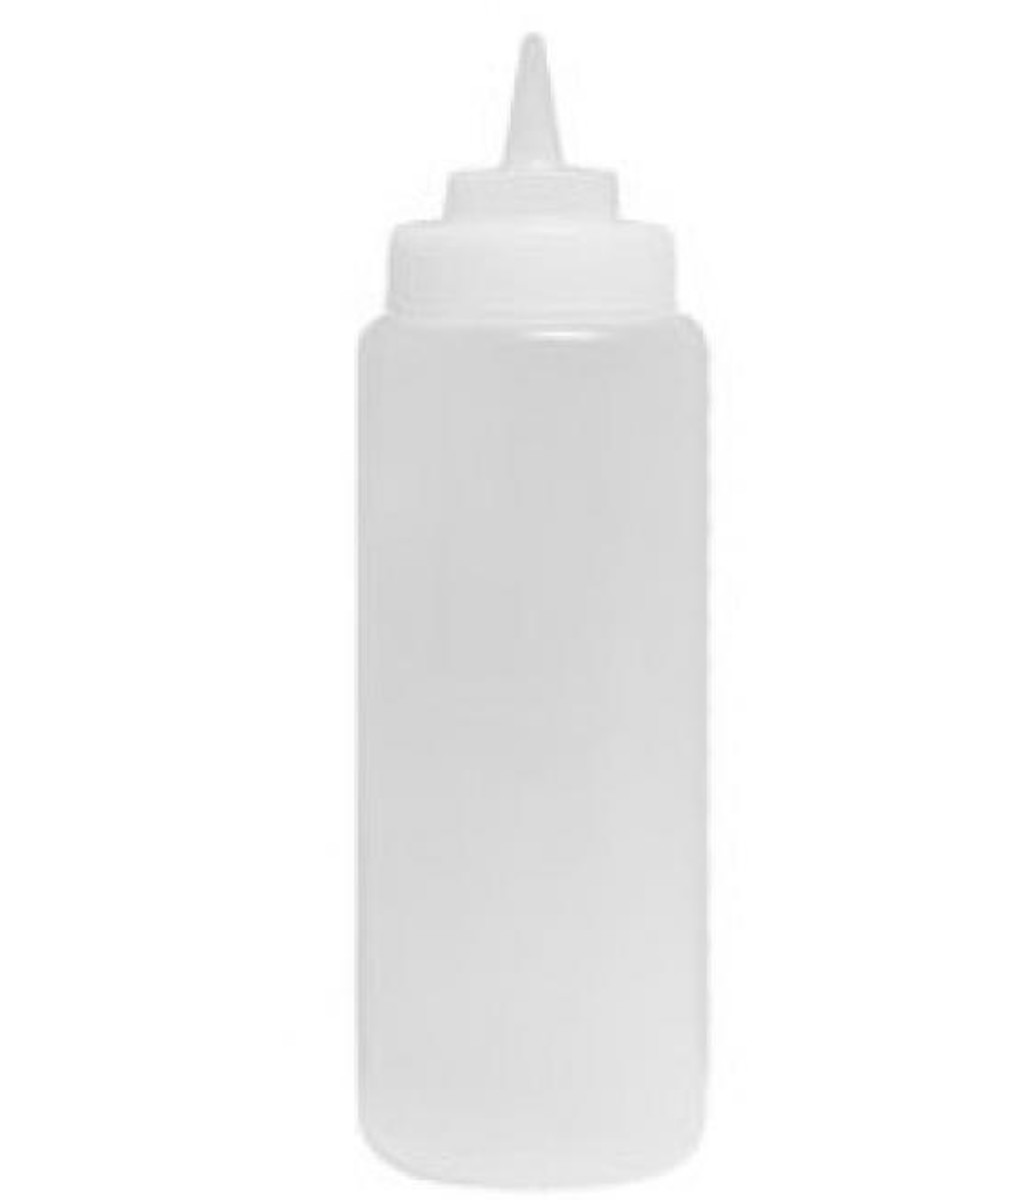 Plastic Squeeze Bottle - 708ml Clear